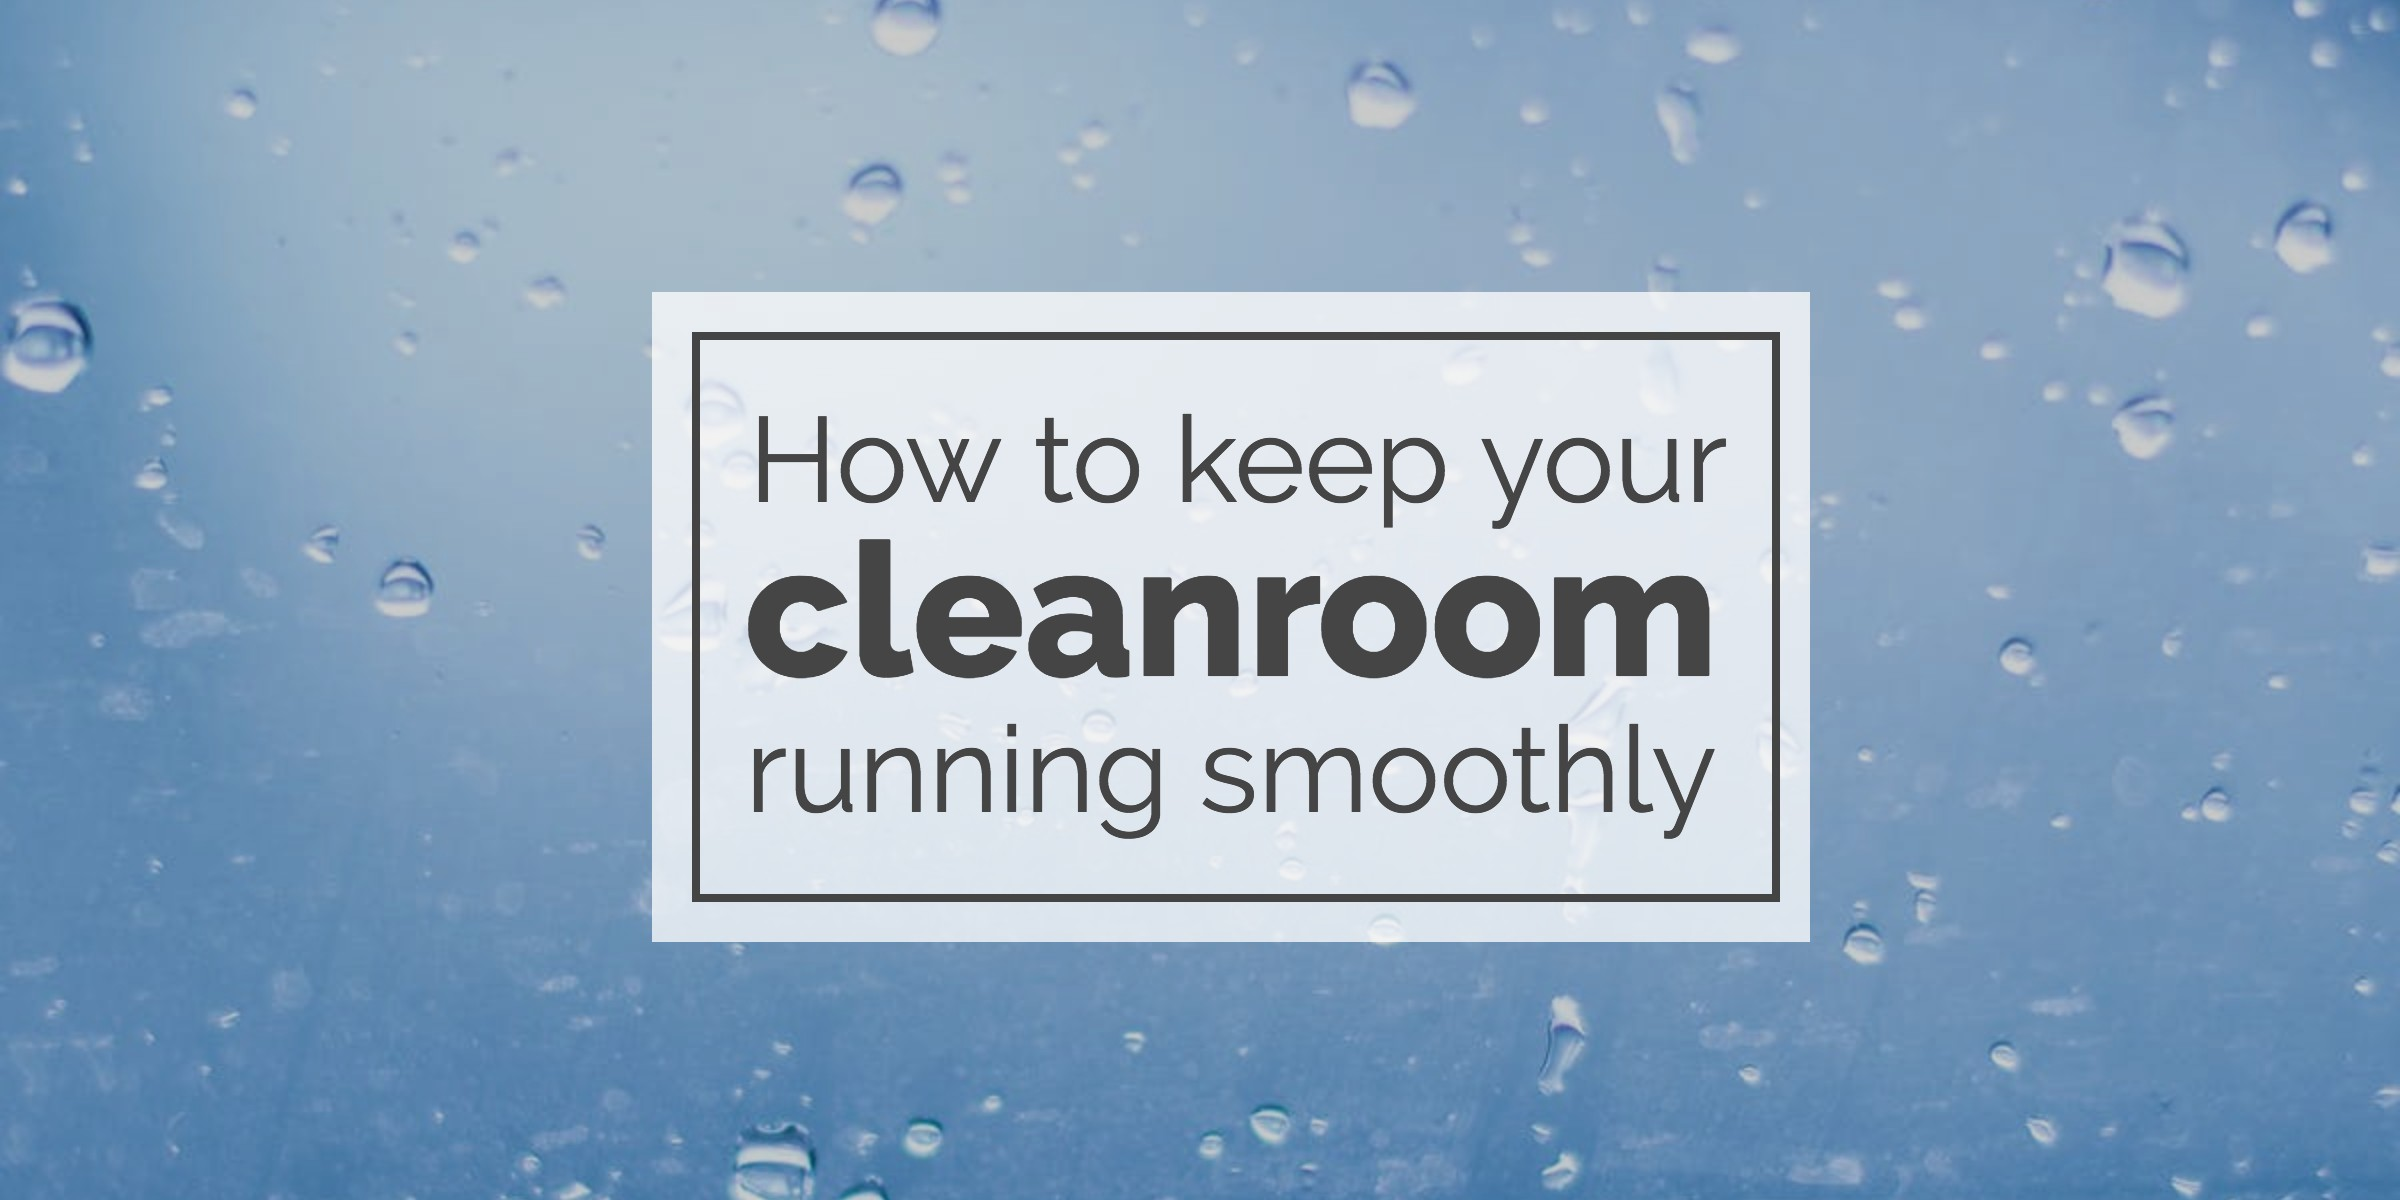 cleanroom-smoothly